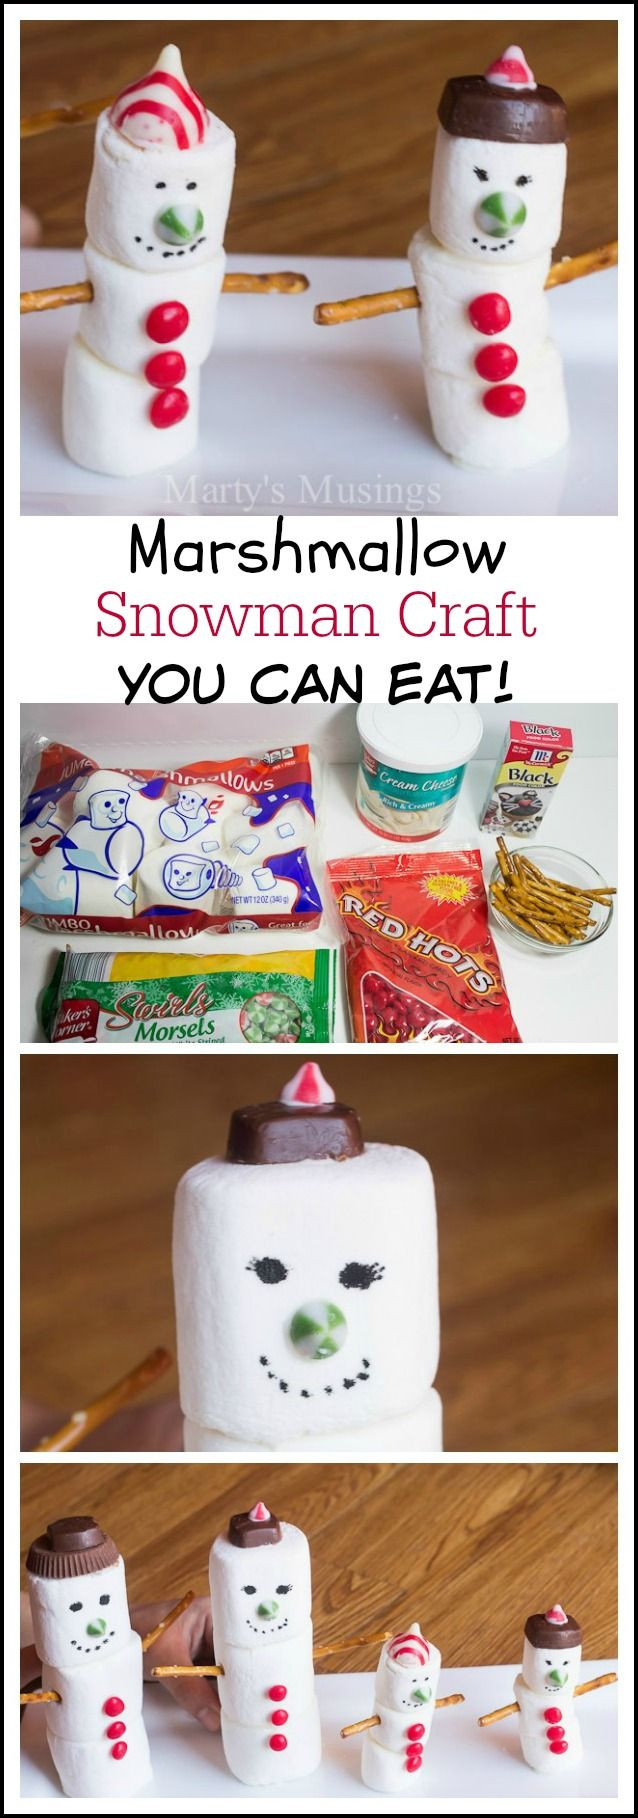 Best ideas about Winter-Crafts-For-Kids At Home . Save or Pin Best 20 Marshmallow Snowman ideas on Pinterest Now.